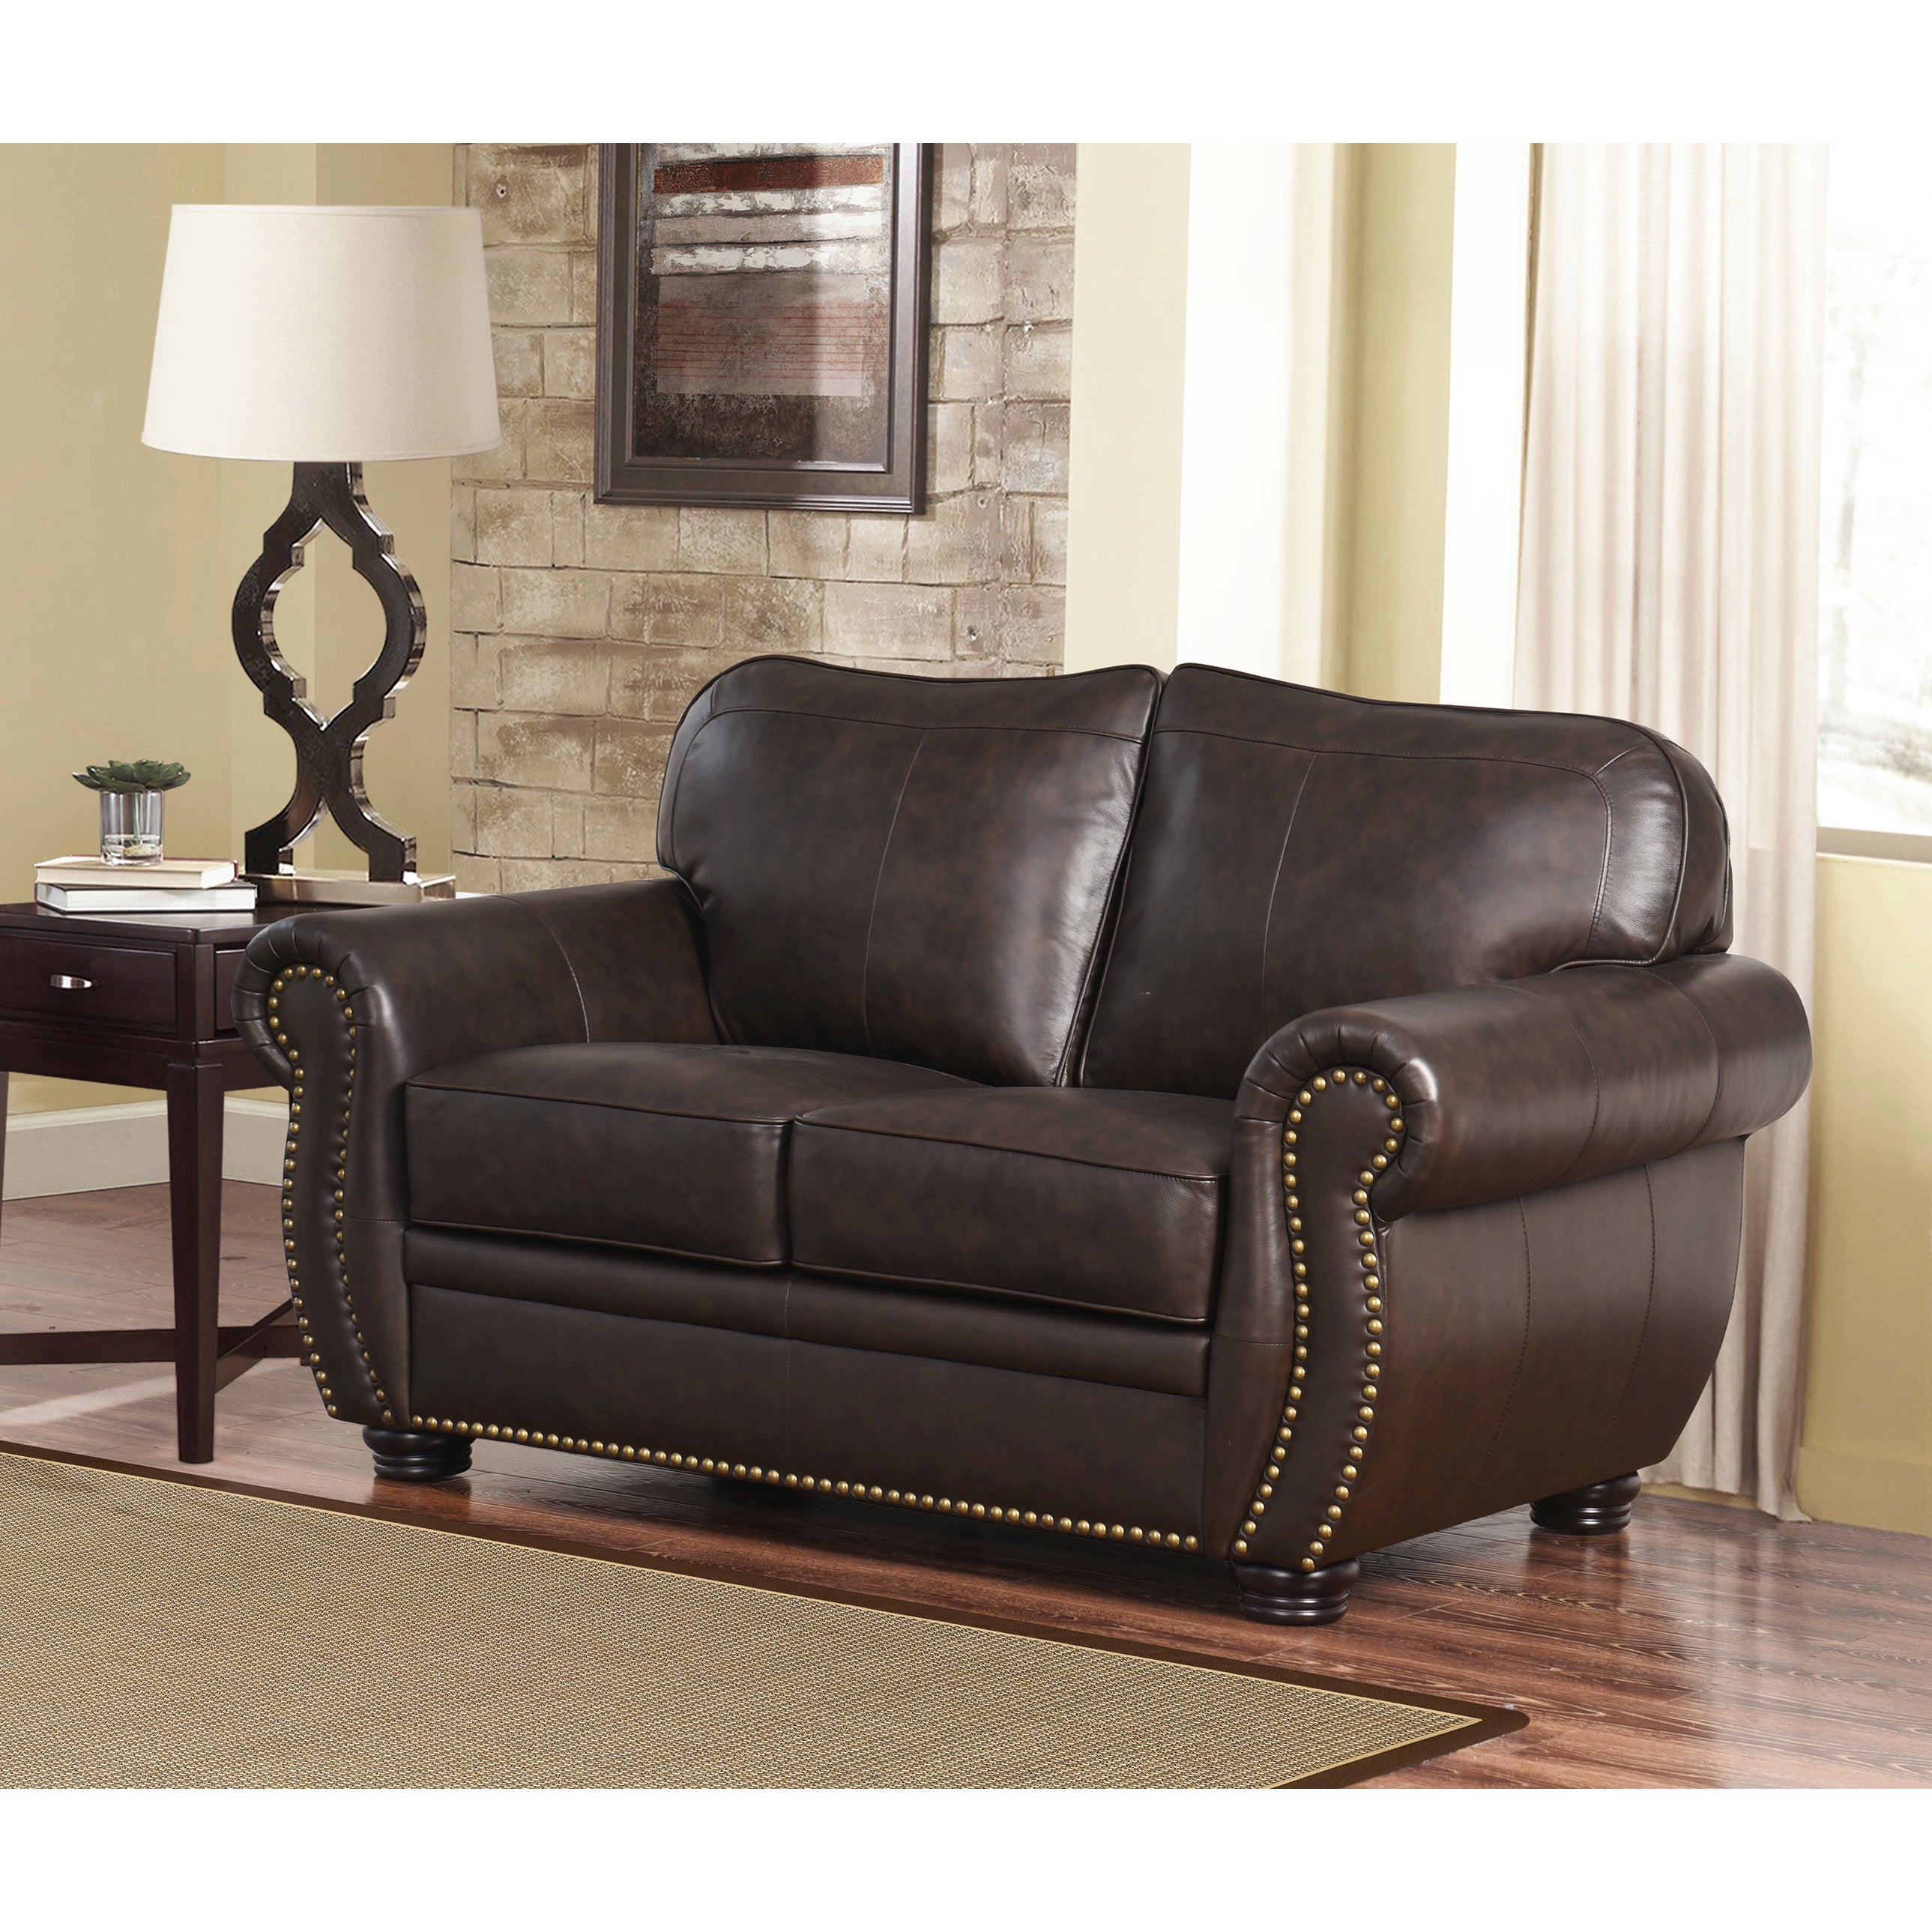 Abbyson Richfield Top Grain Leather 4 Piece Living Room Set Free